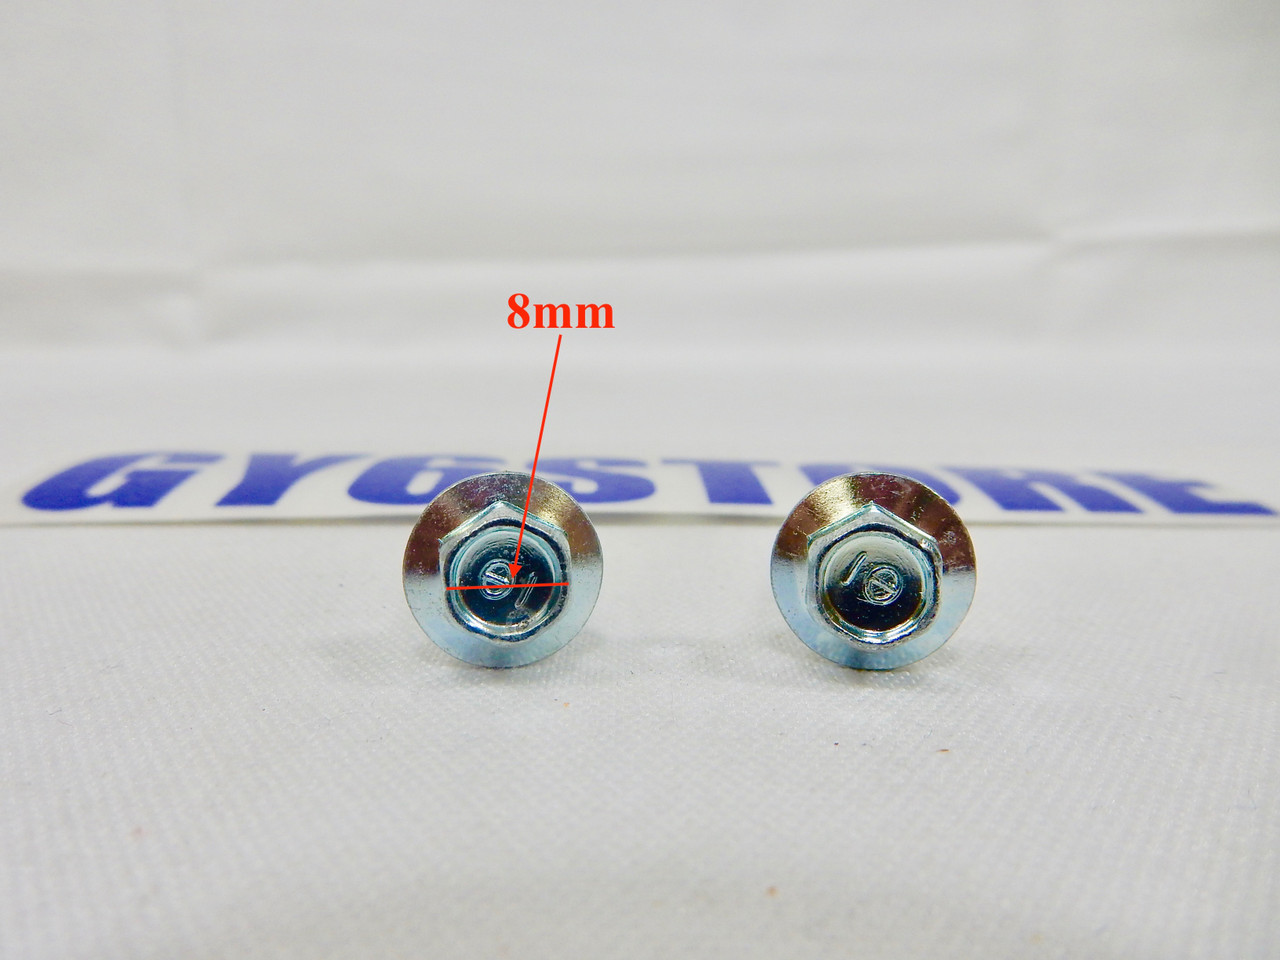 M6 / 6mm x 30mm FLANGE BOLTS *2 PACK*